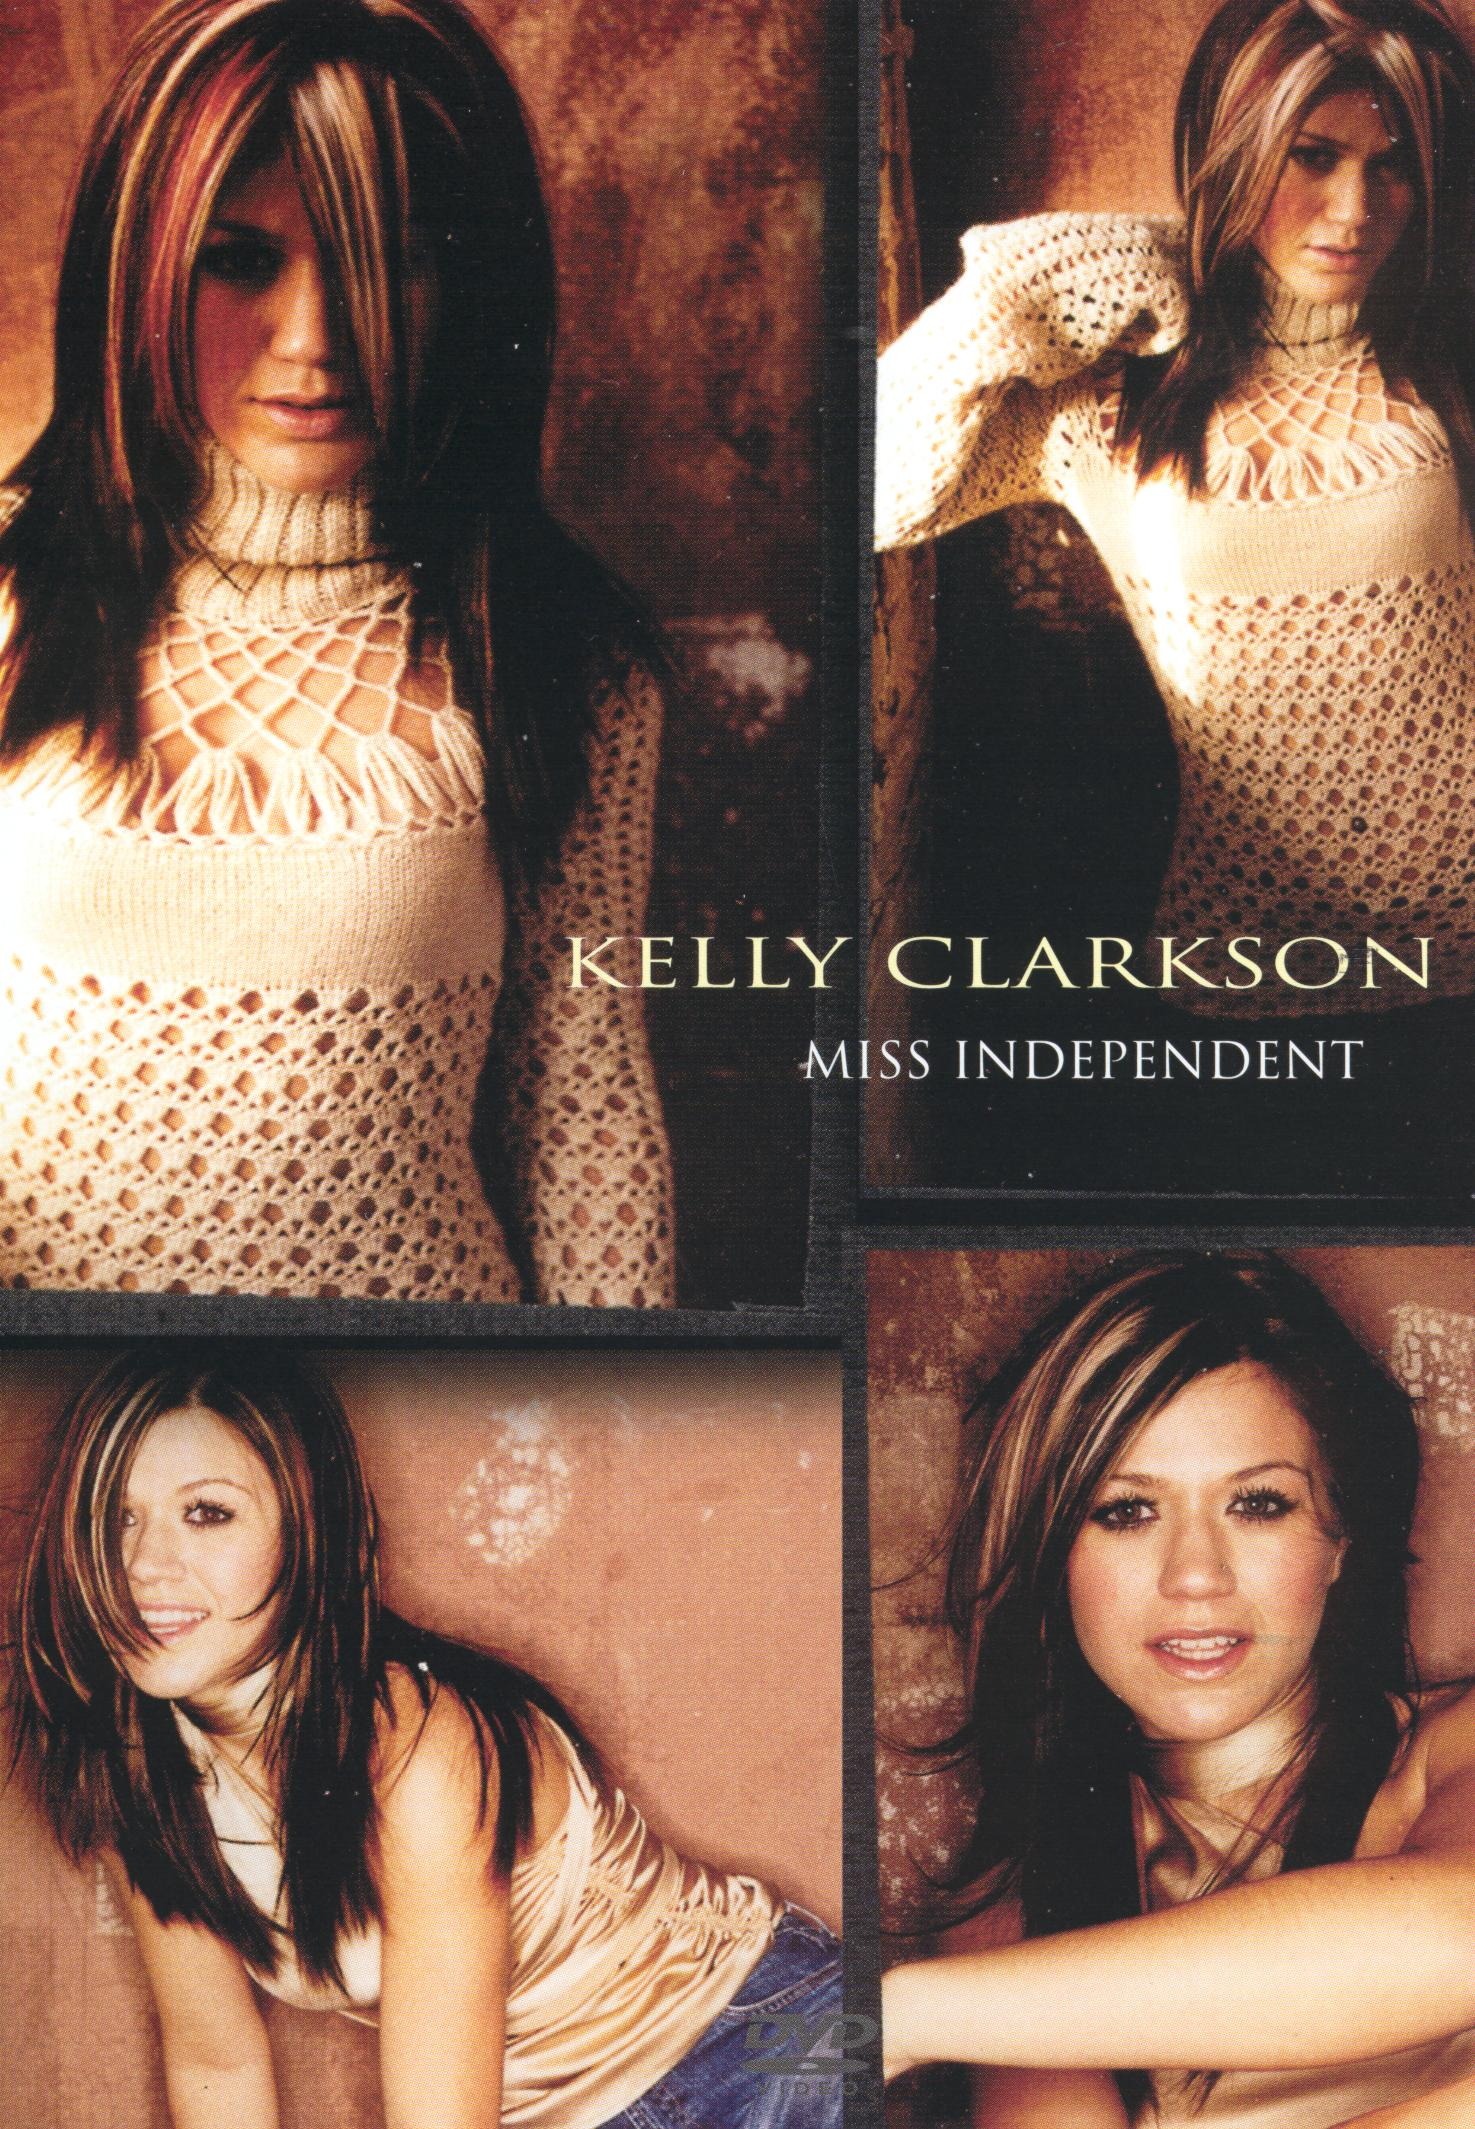 Kelly Clarkson: Miss Independent